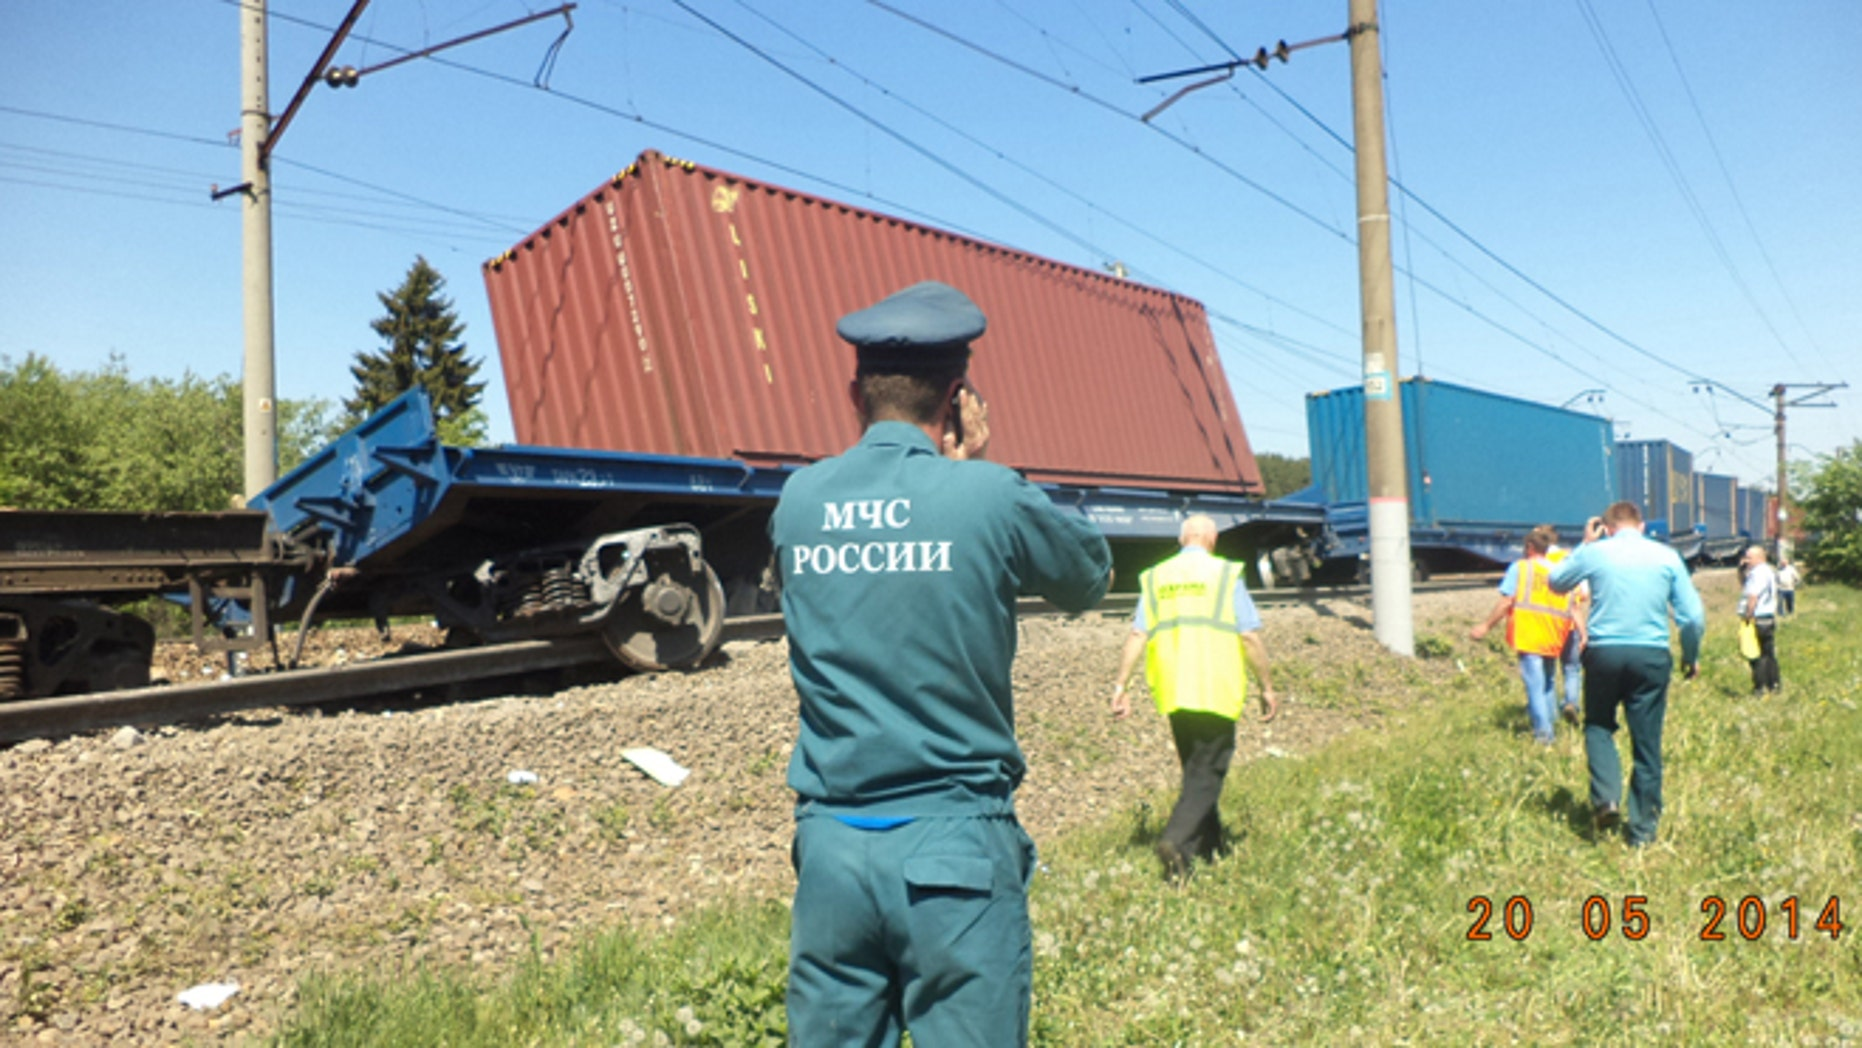 May 20, 2014: A ministry employee uses a mobile phone at the site of train collision near the city of Naro-Fominsk outside Moscow.  (AP/ Ministry for Emergency Situations Press Service)